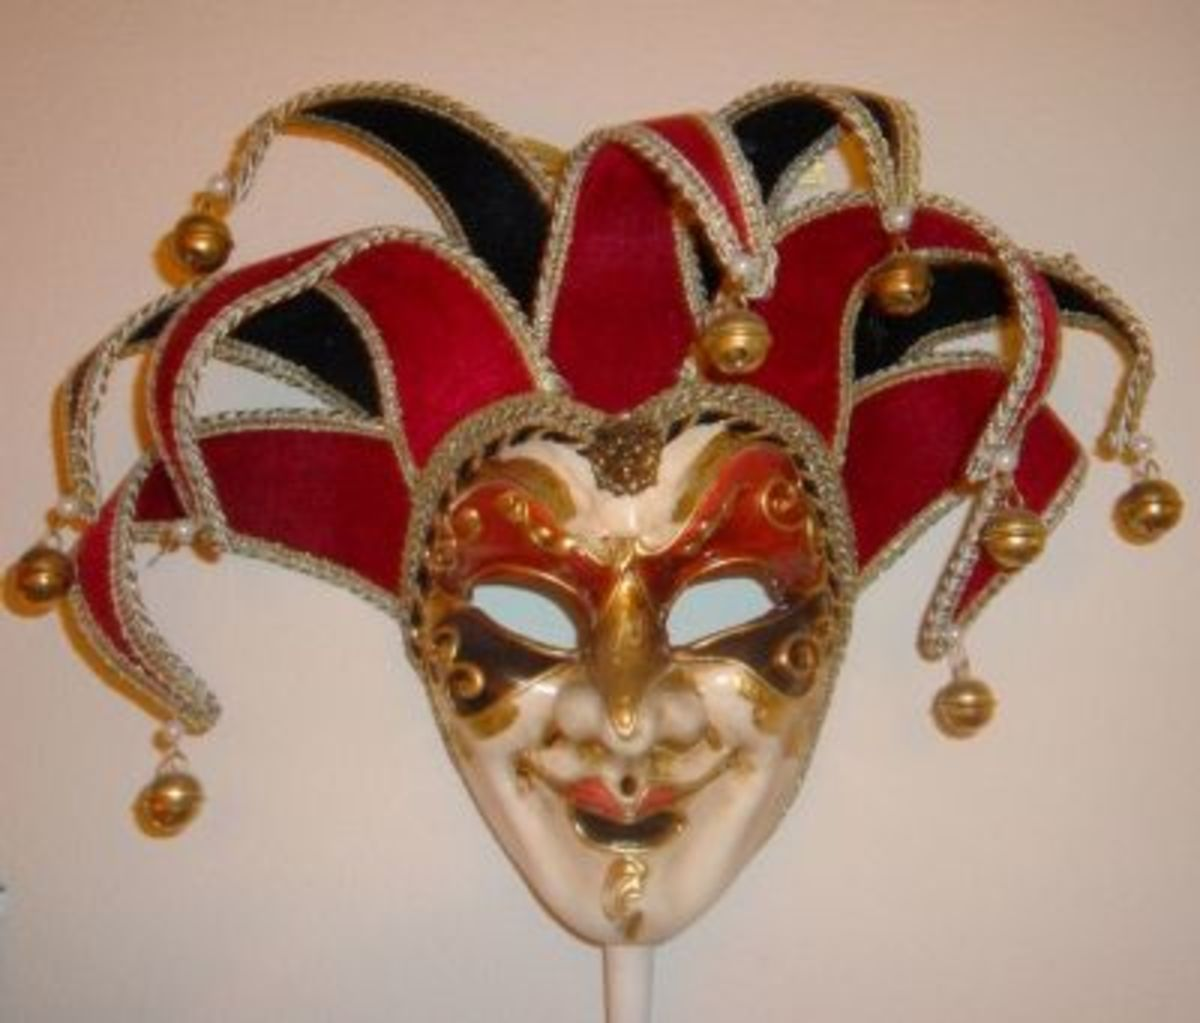 Our Maschera del Galeone Carnival Mask - 9-point jolly mask